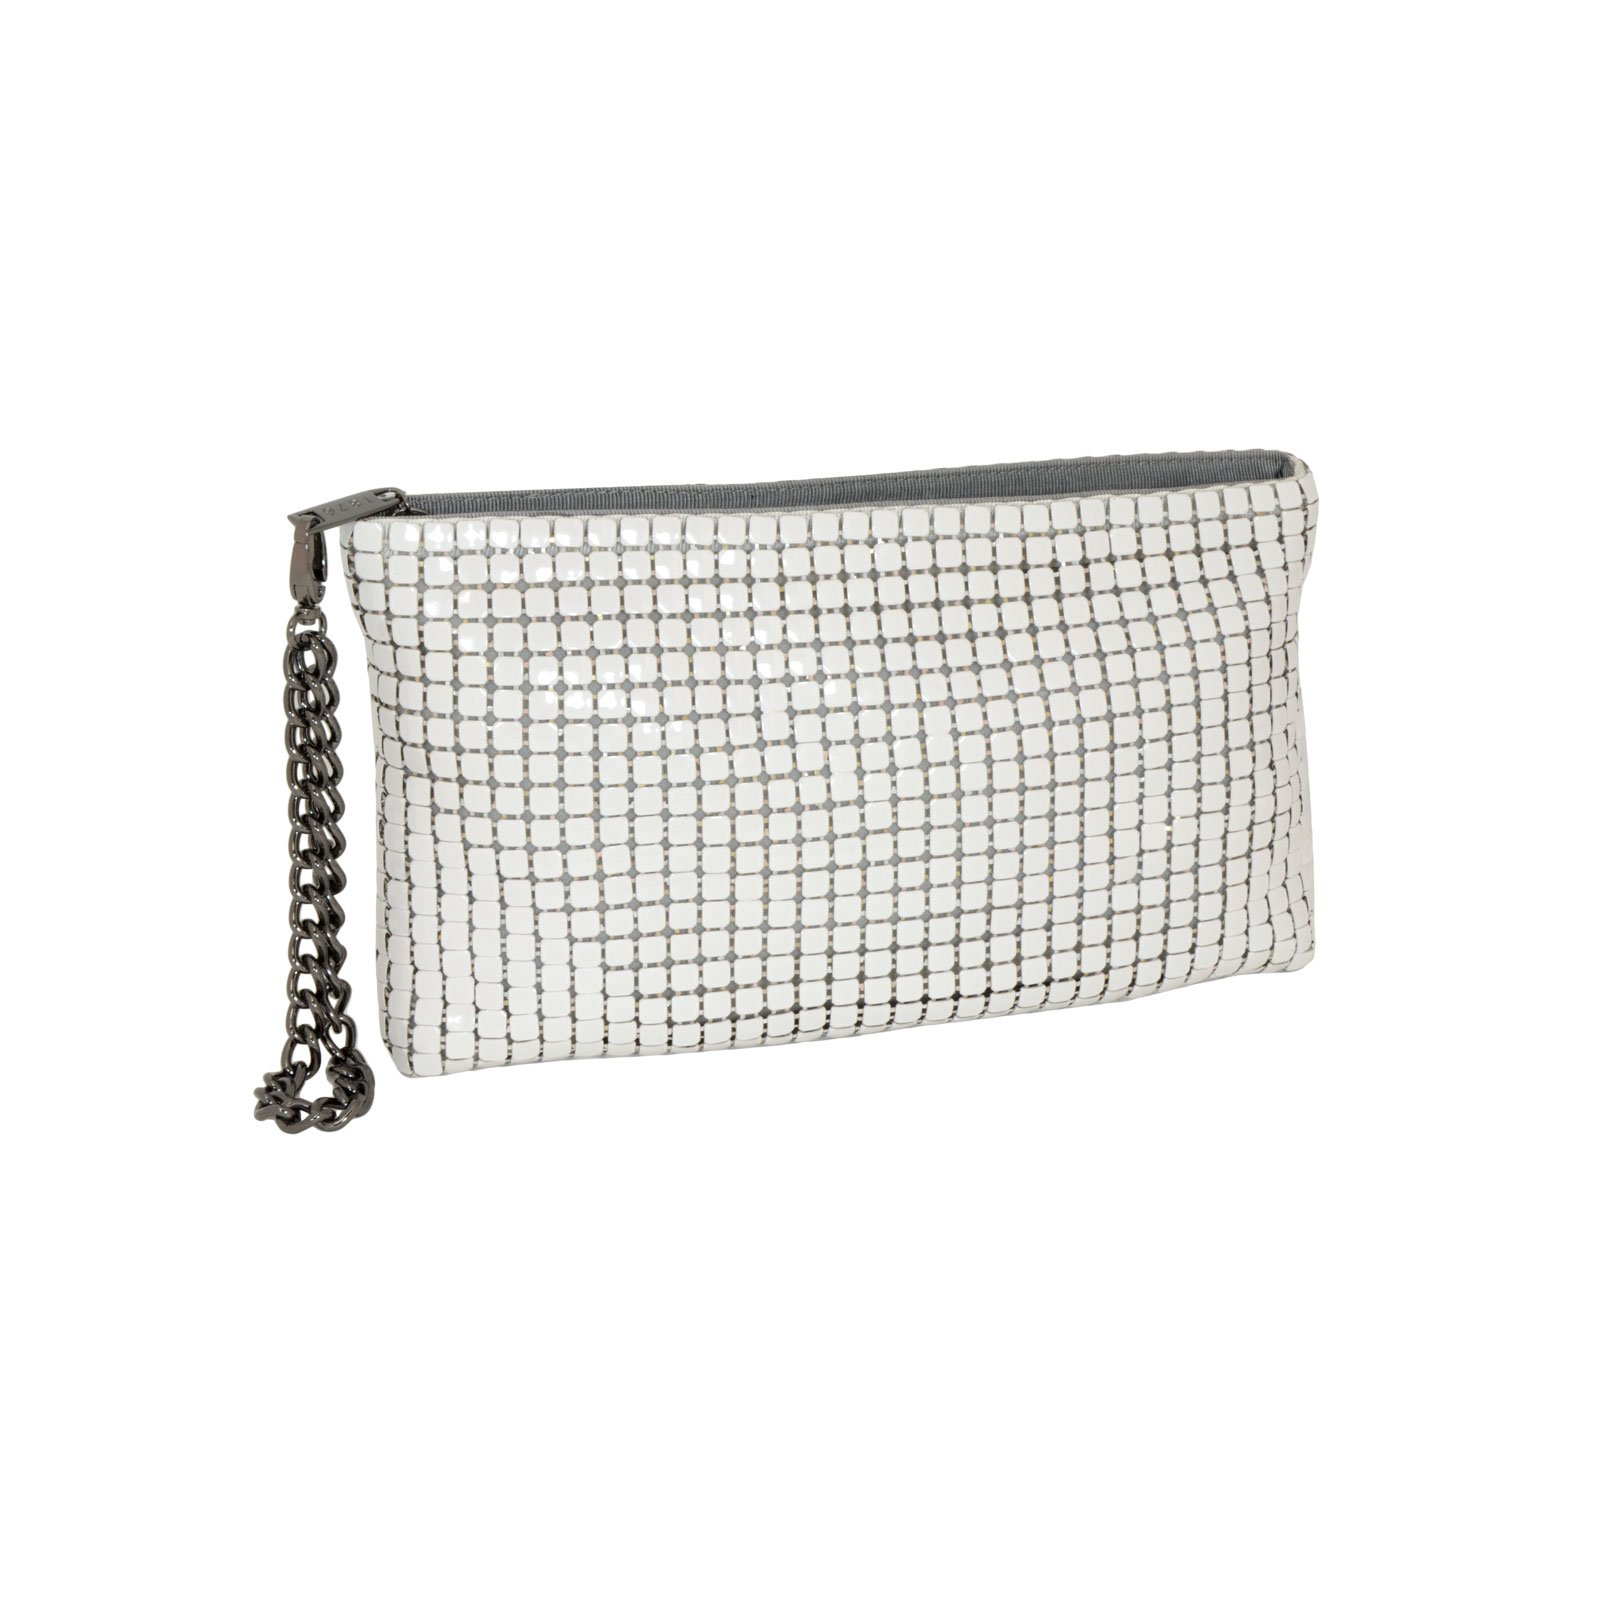 Whiting & Davis Mega Mesh Wristlet Clutch